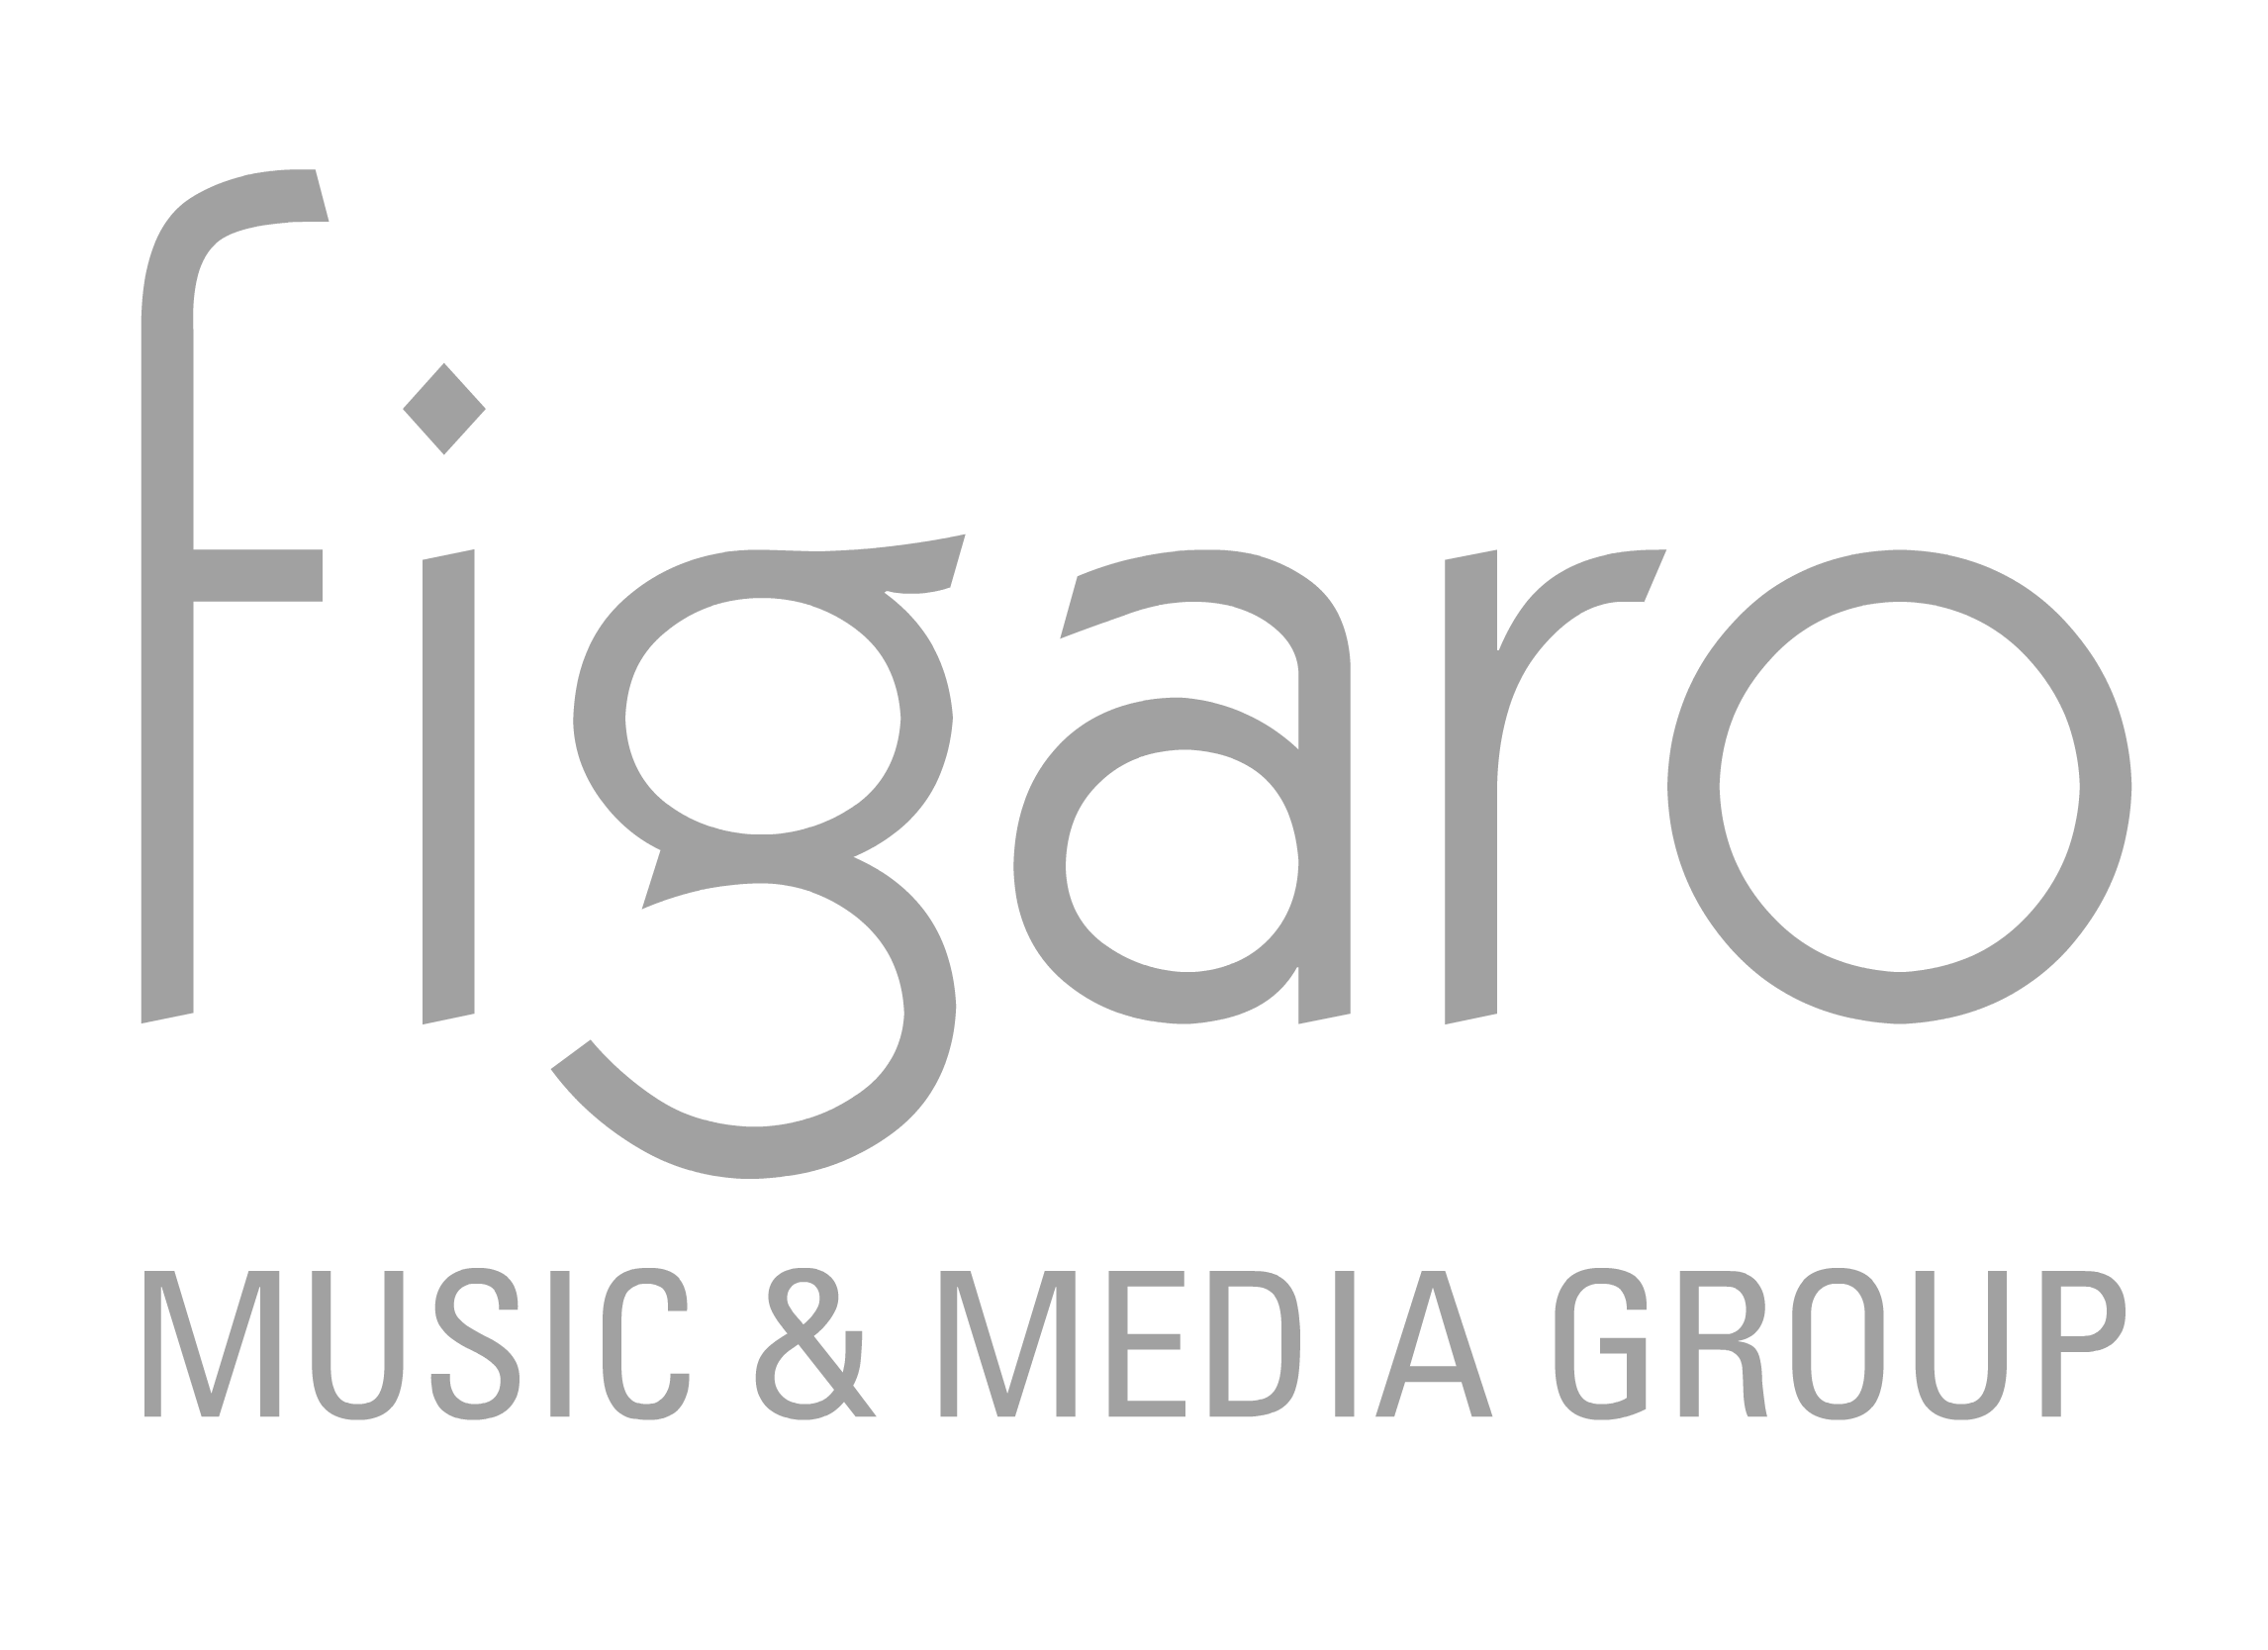 Produktionsbolag | Figaro Music & Media Group | Sverige